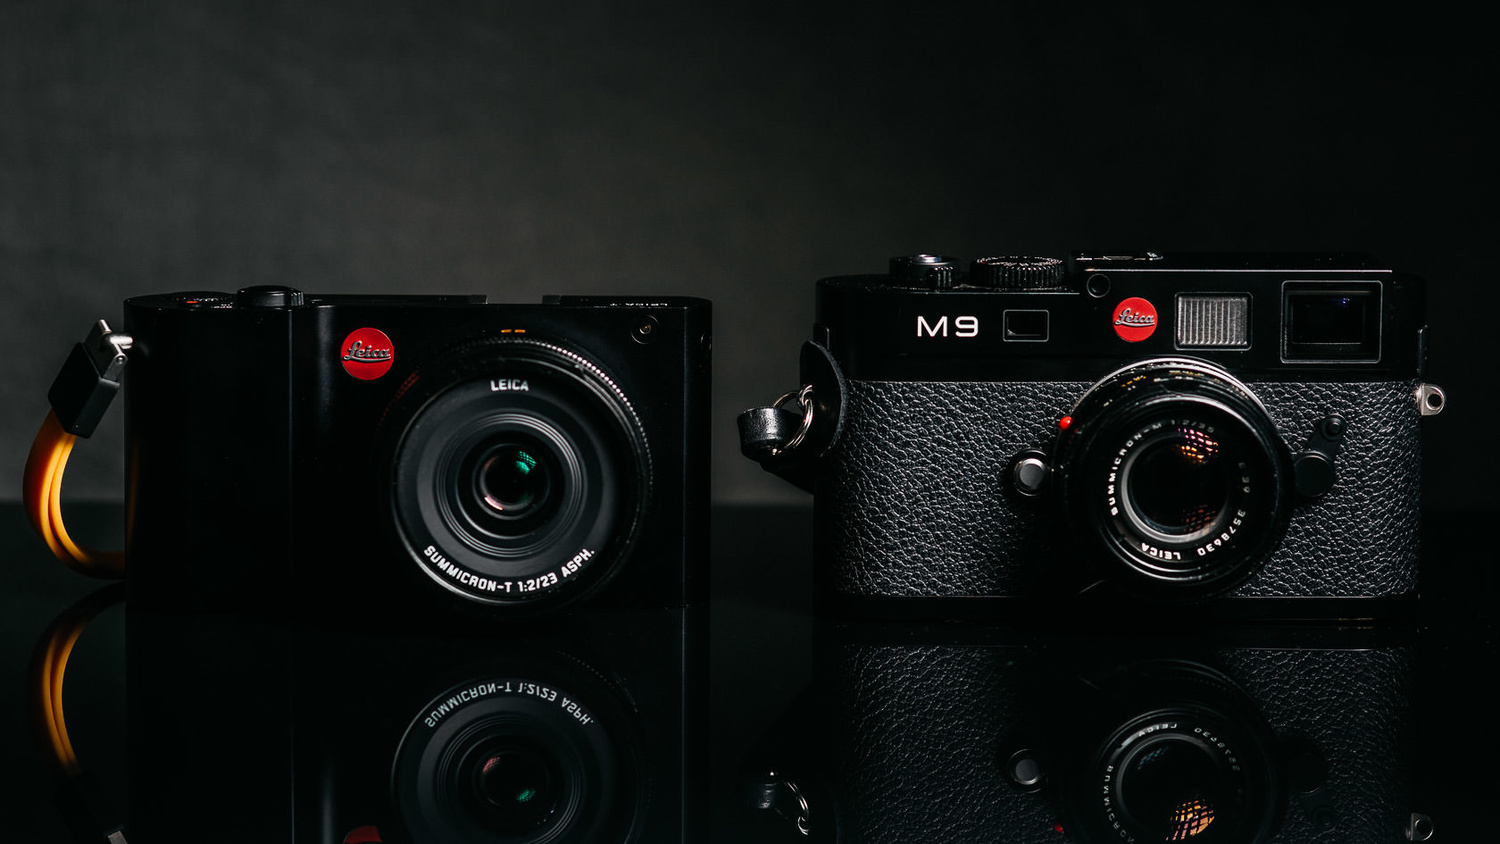 Photo of Leica T and Leica M9 from the front